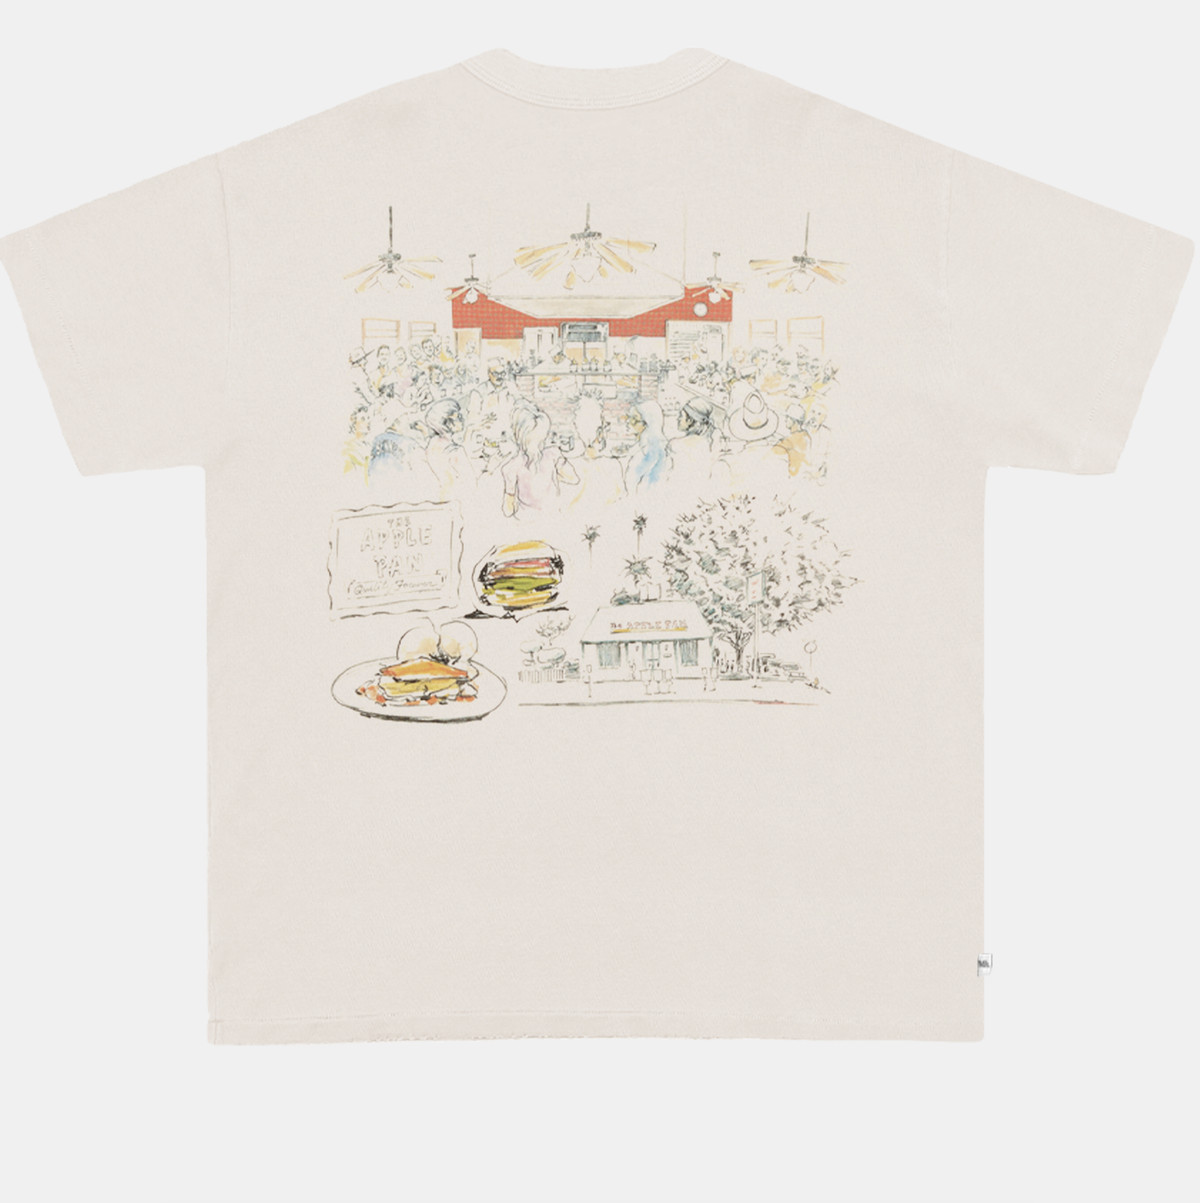 An artist rendering of Apple Pan on the back of a shirt.